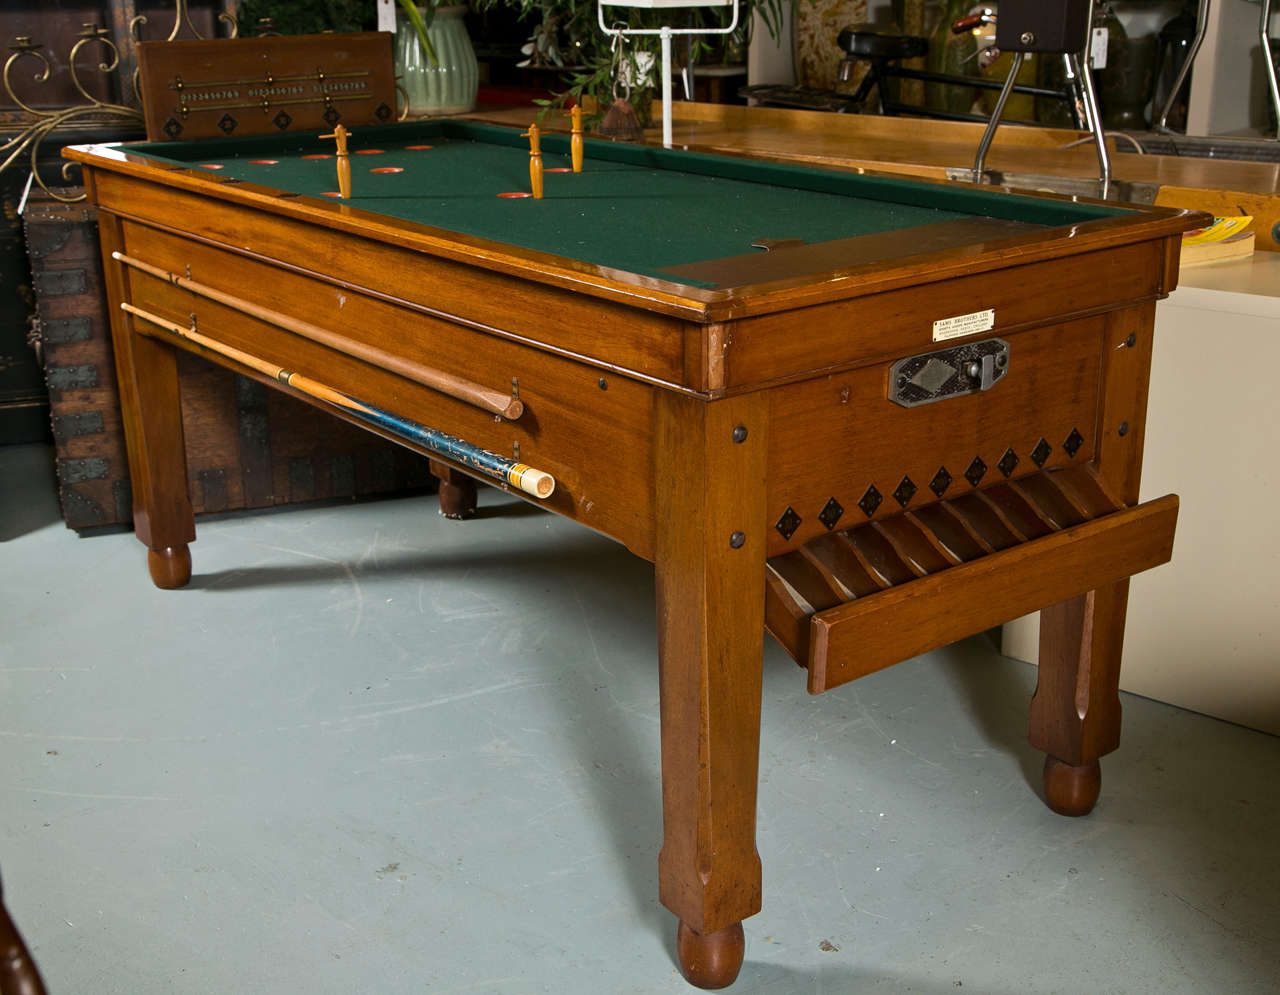 Coin Operated English Billiard Table By Sam Brothers, Hoddesdon , England.  Gill Jelkes Convinced